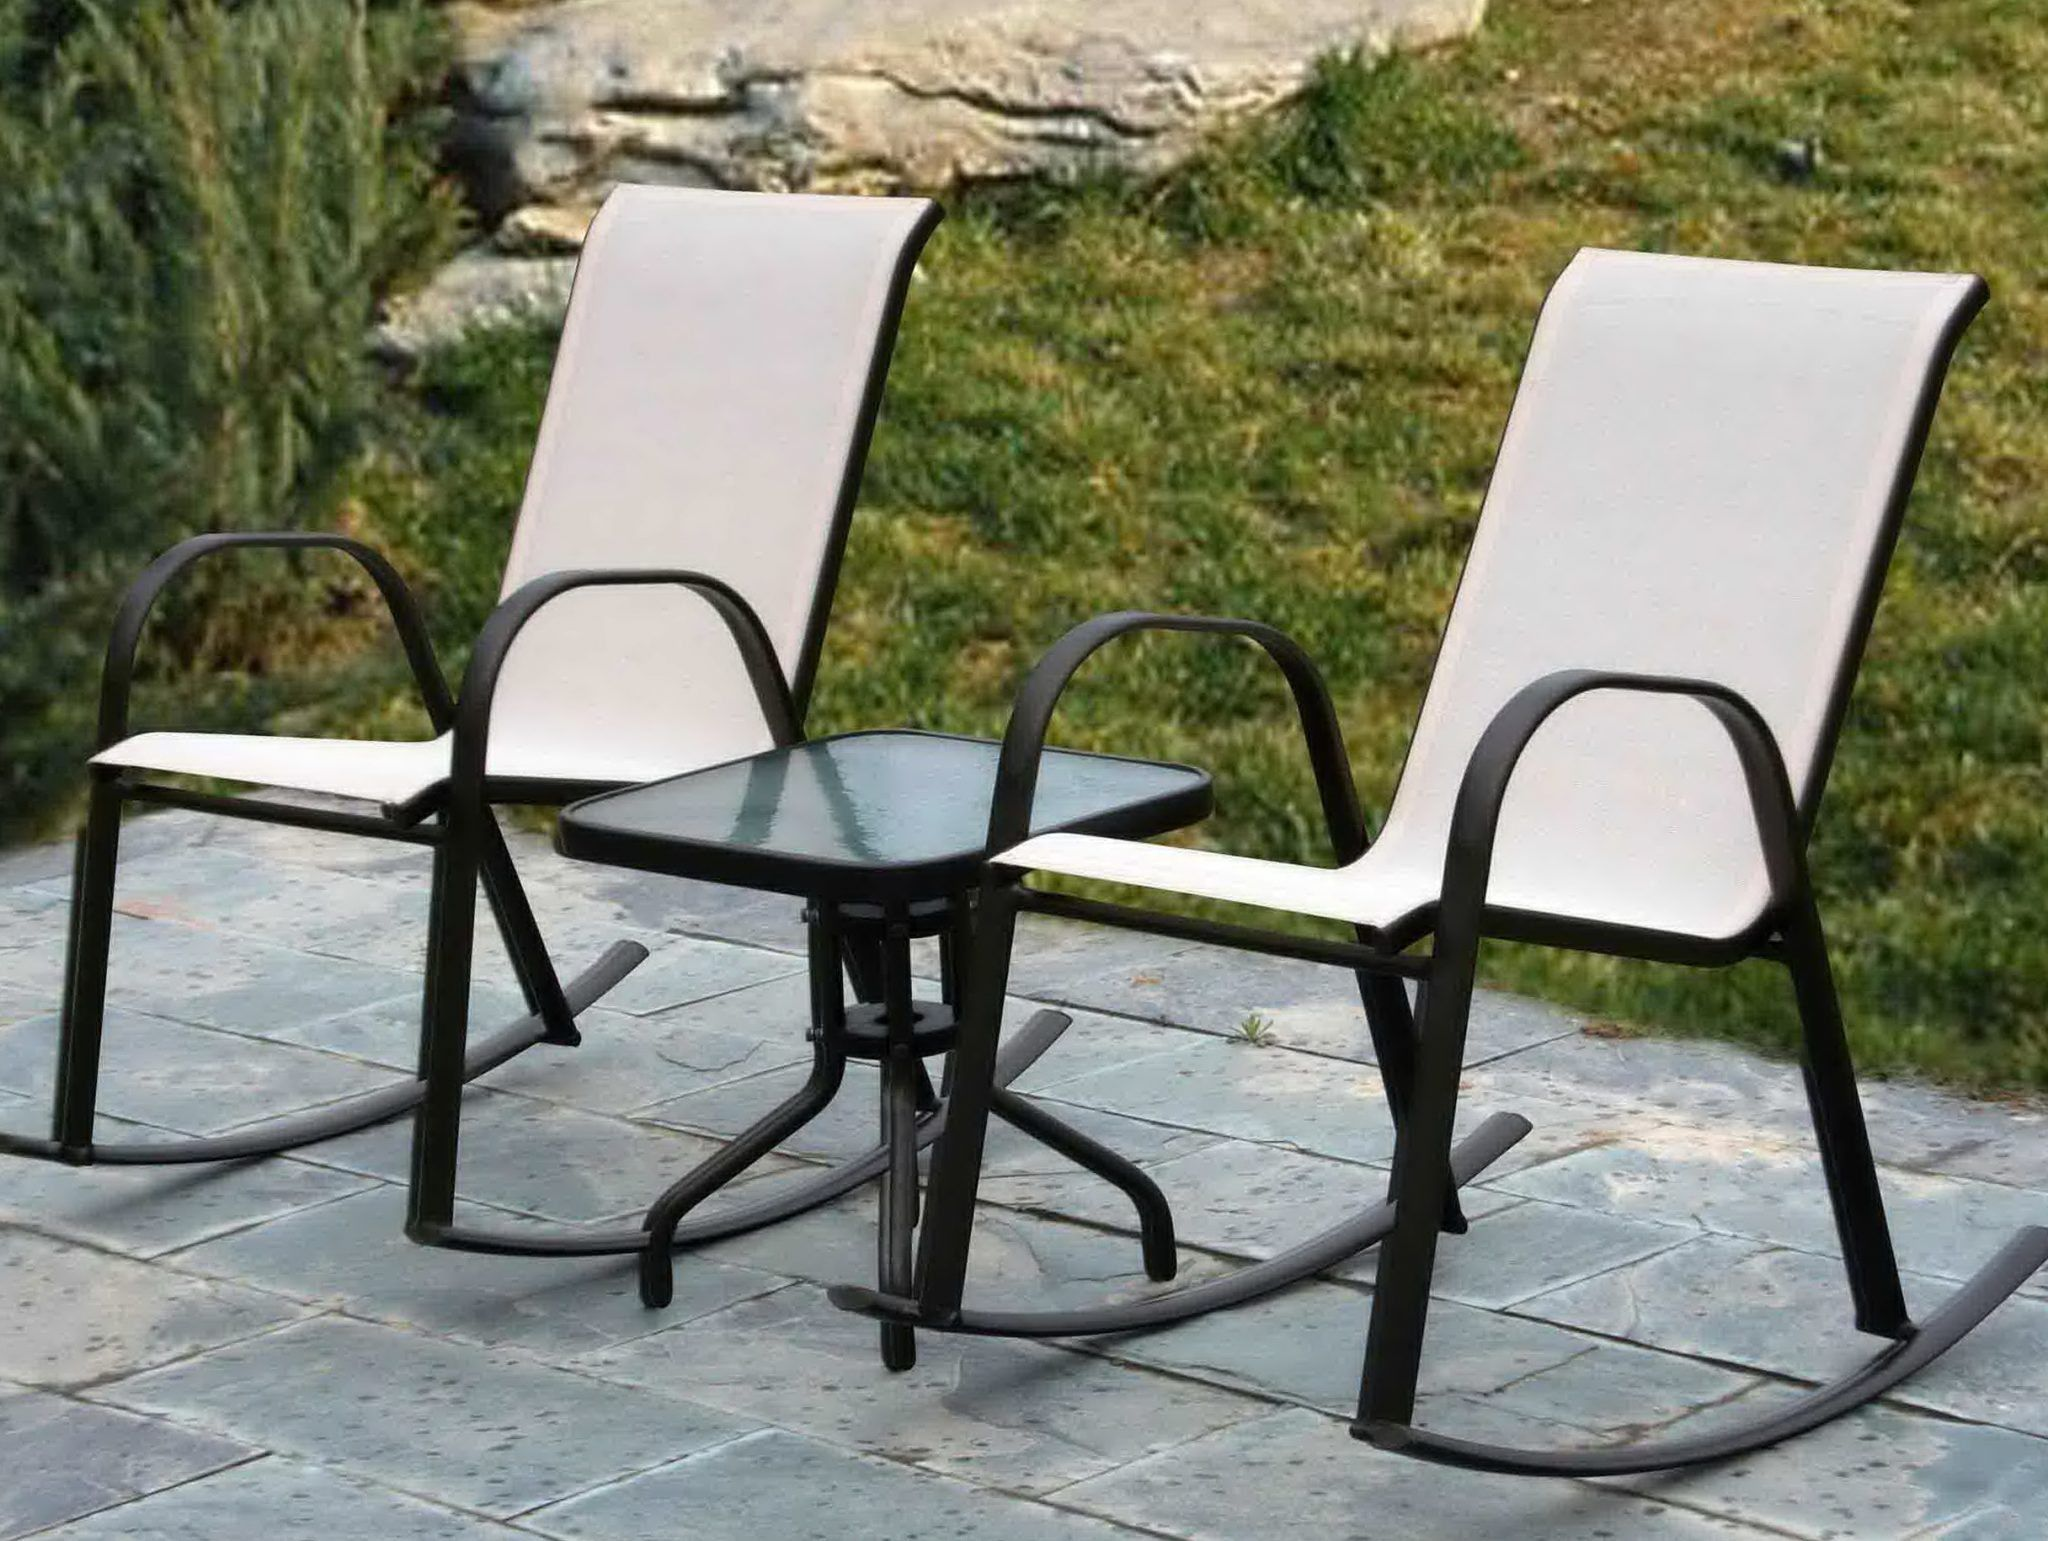 Comfortable Patio Furniture Without Cushions With Images